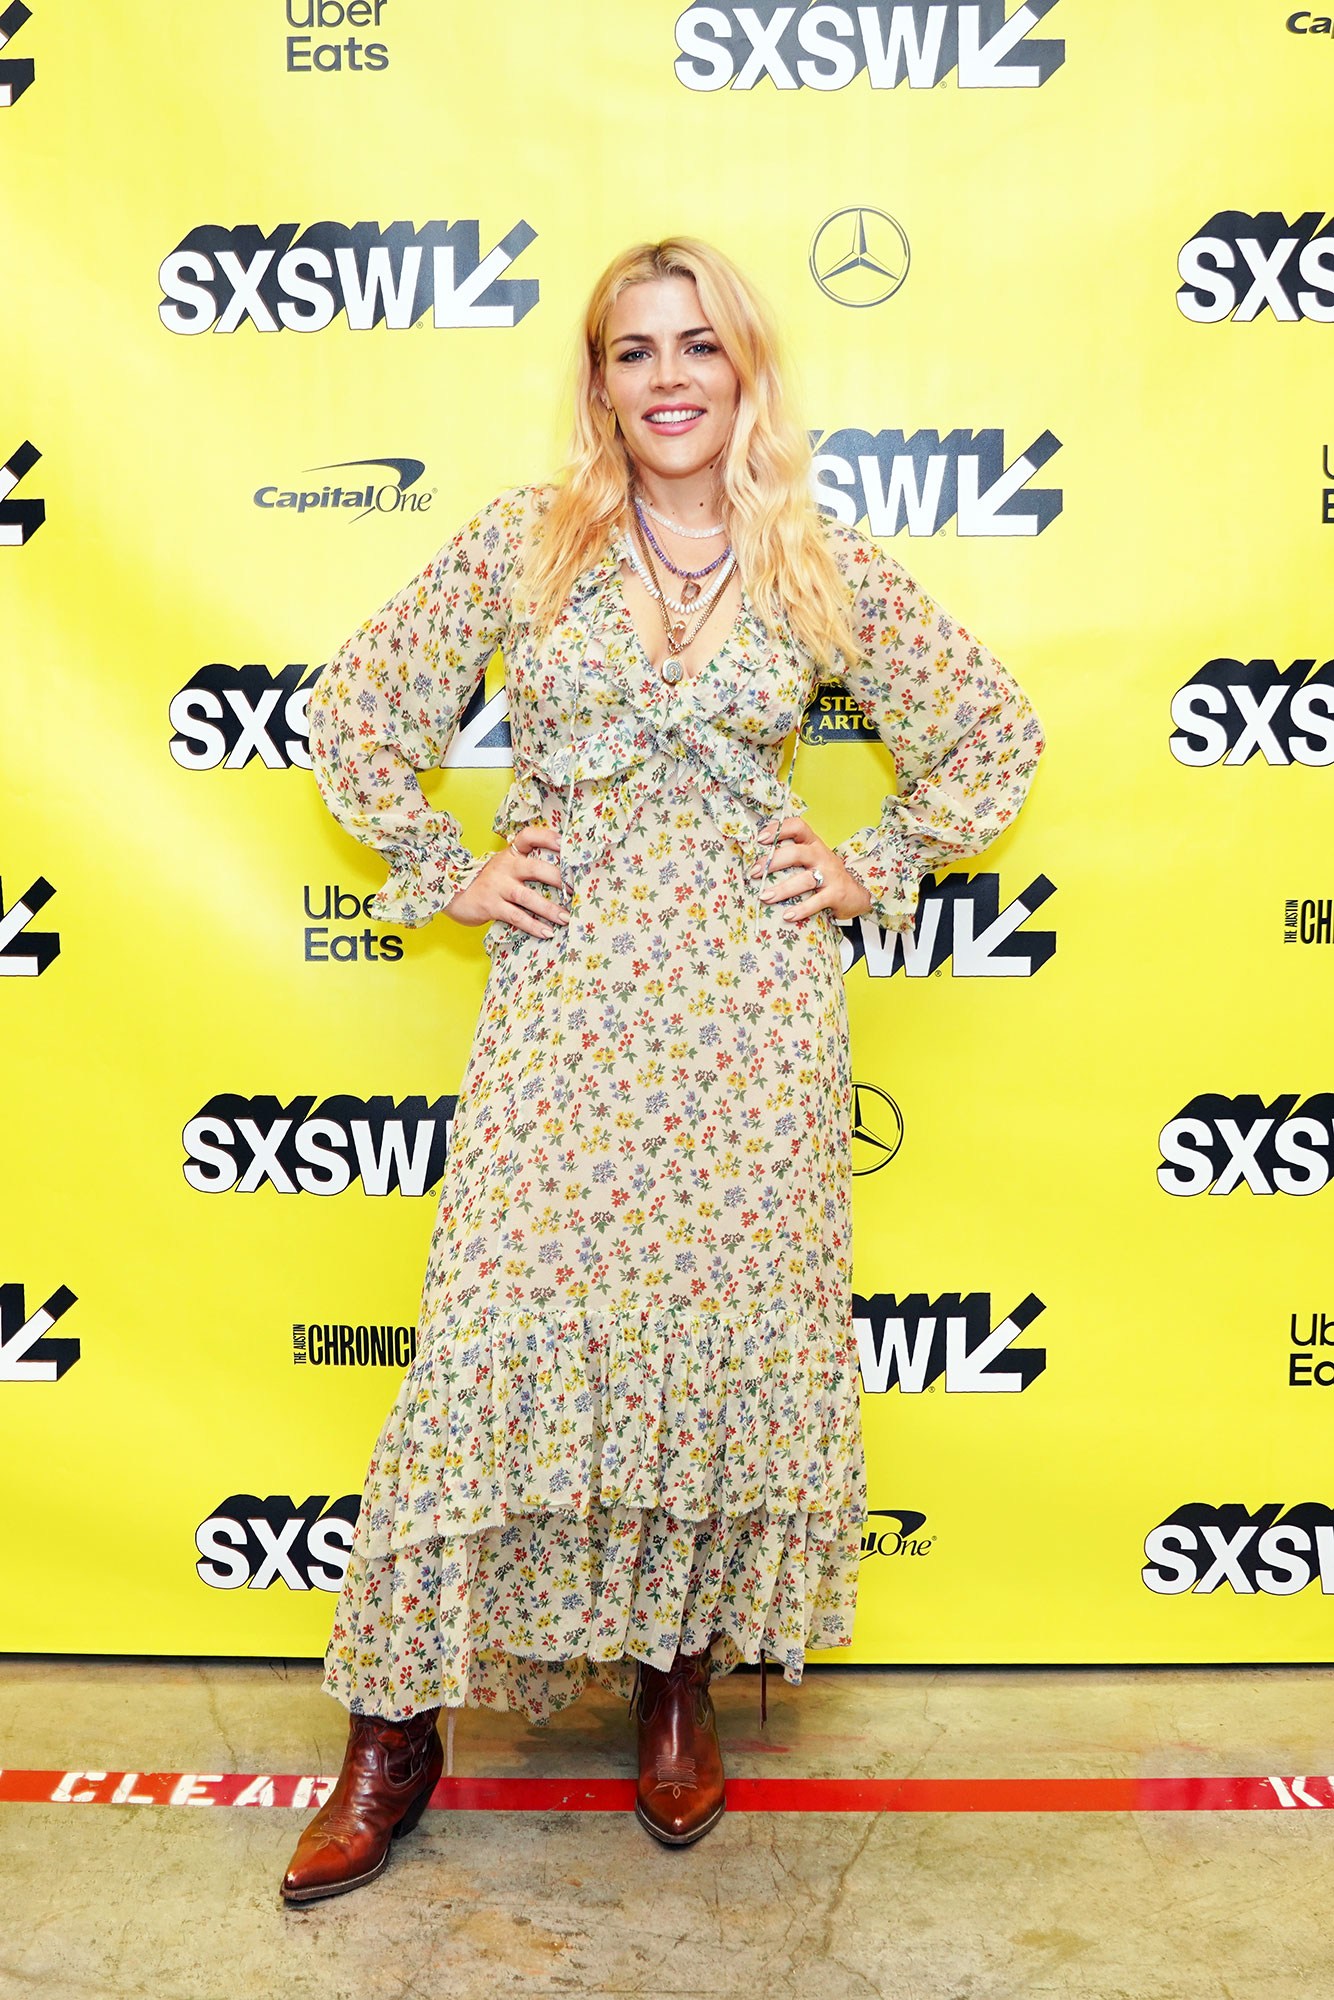 Busy Philipps The Stars Bring Their Beauty and Style A-Game to SXSW - The best way to accessorize a pretty floral maxi? With cowboy boots and piled-on necklaces as the late-night host did on Friday, March 8.